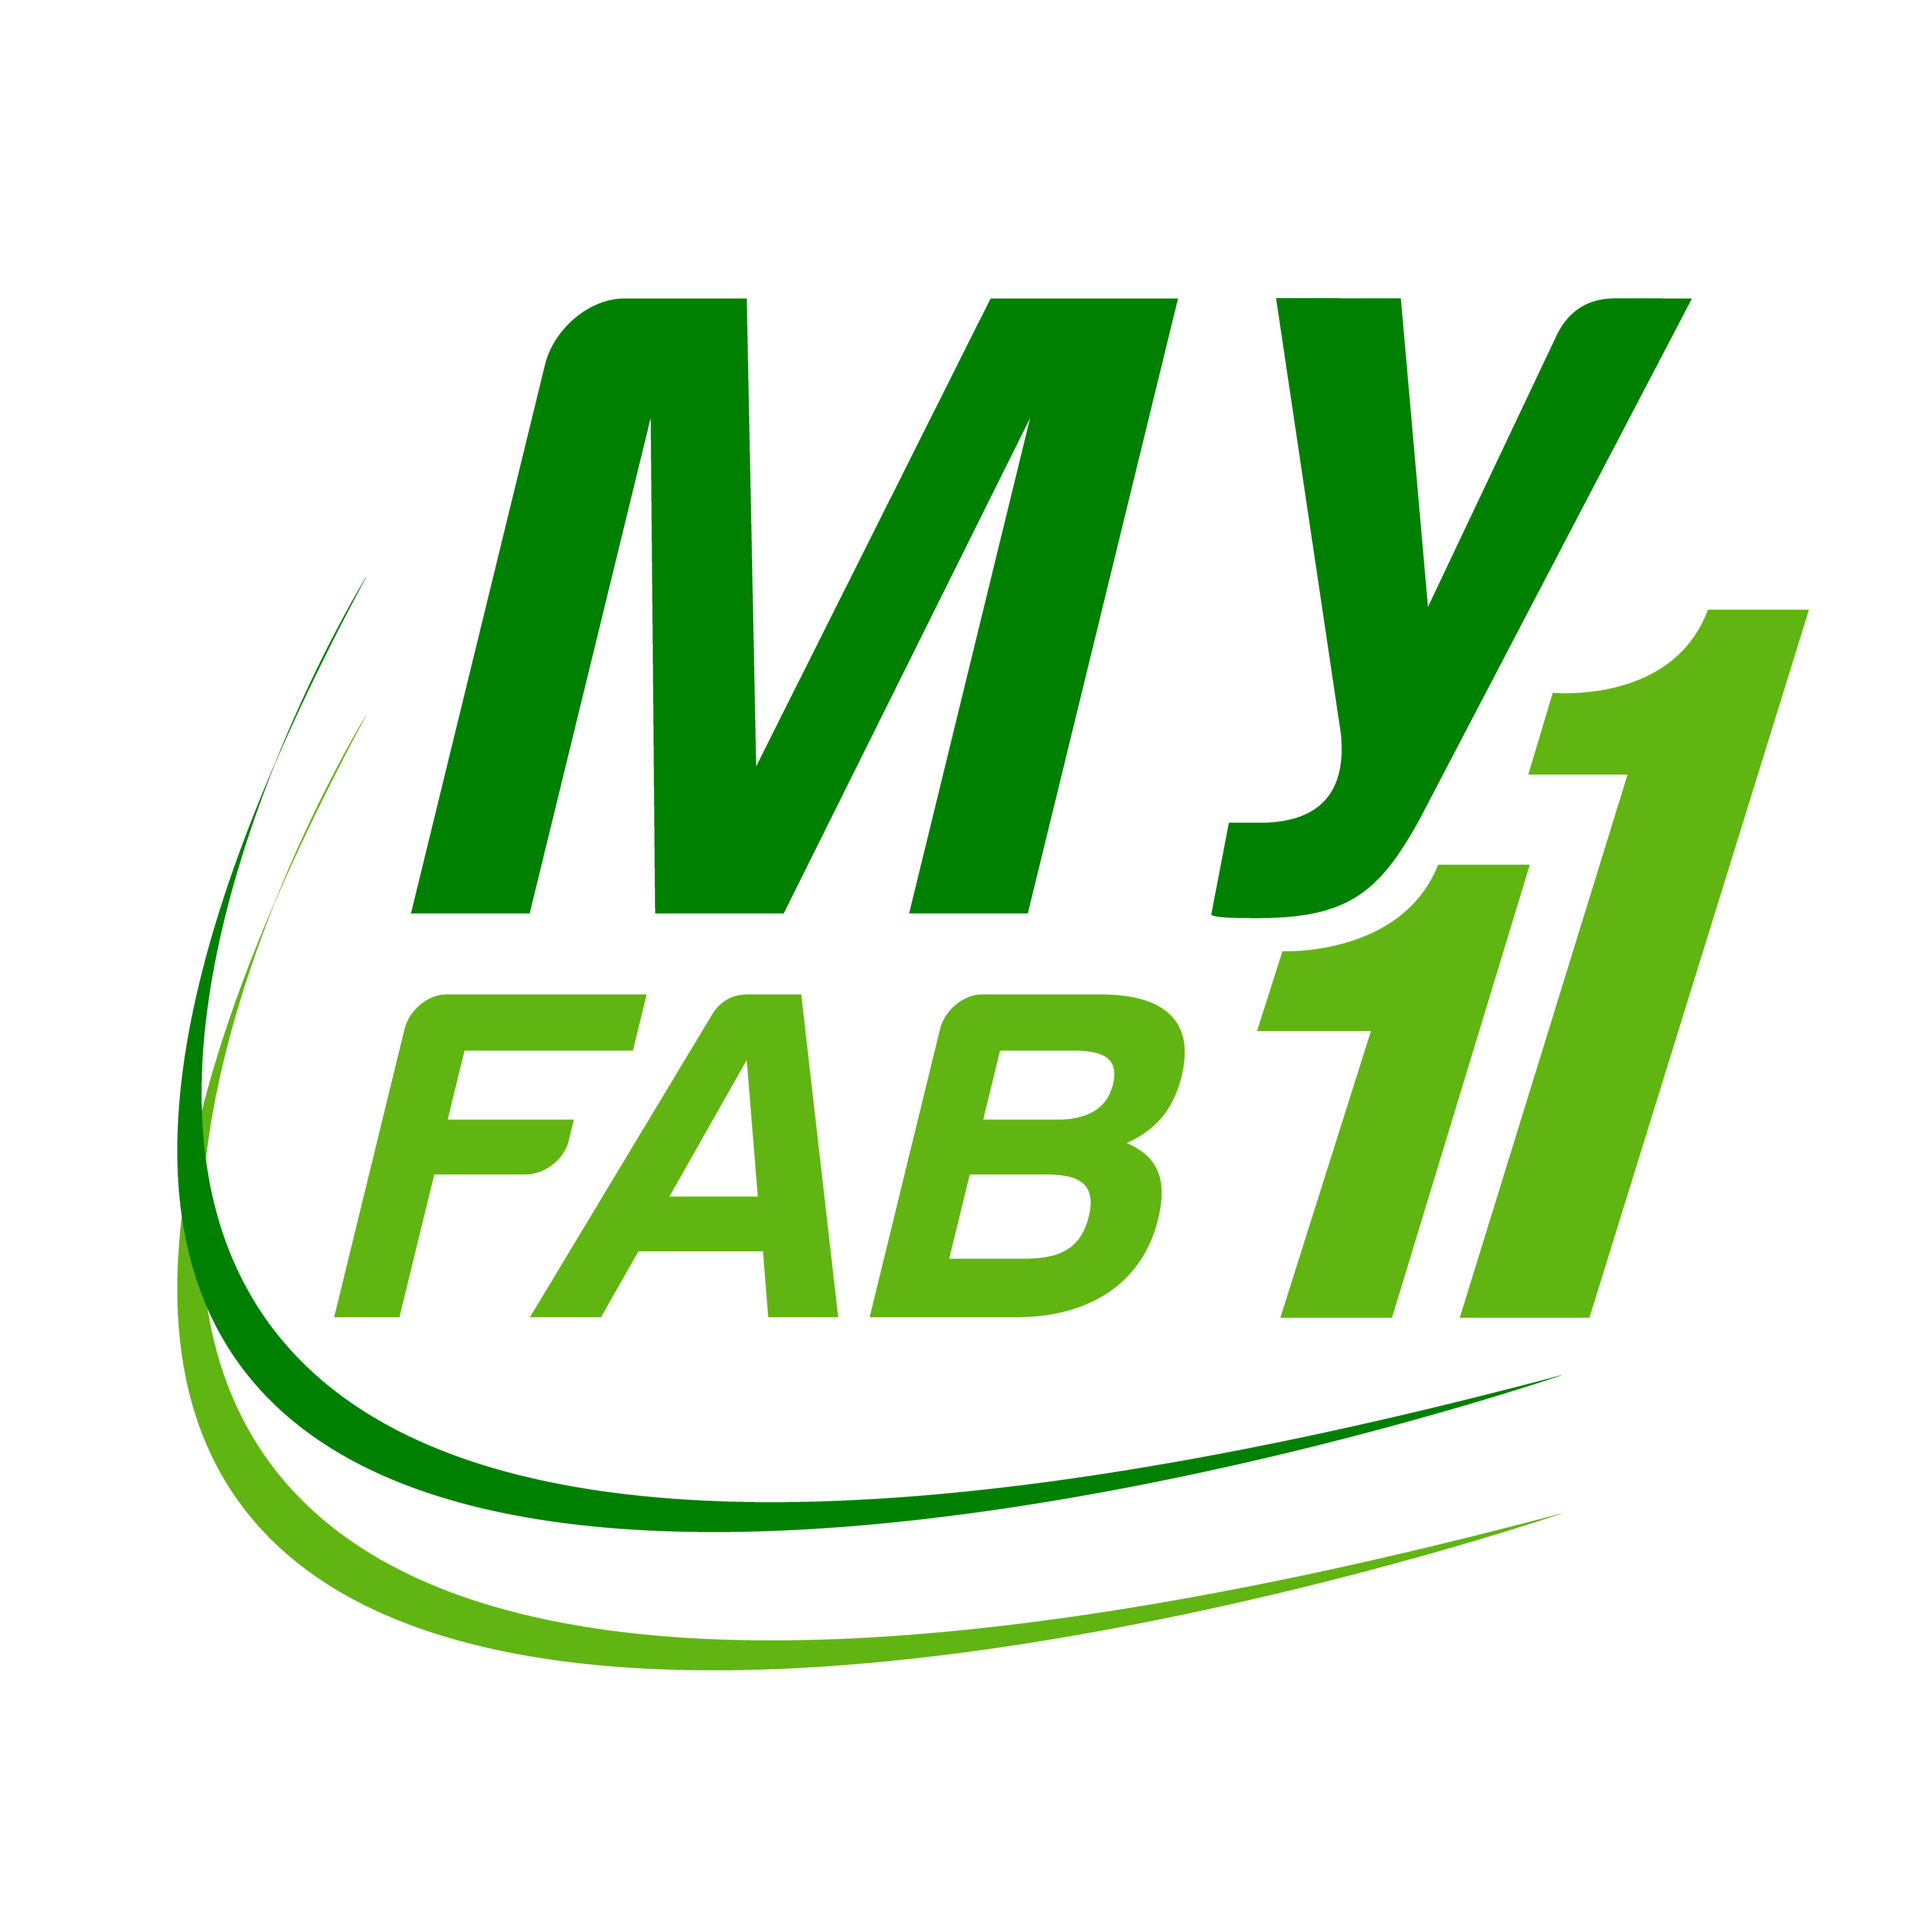 MyFab11 - Fantasy Cricket Game